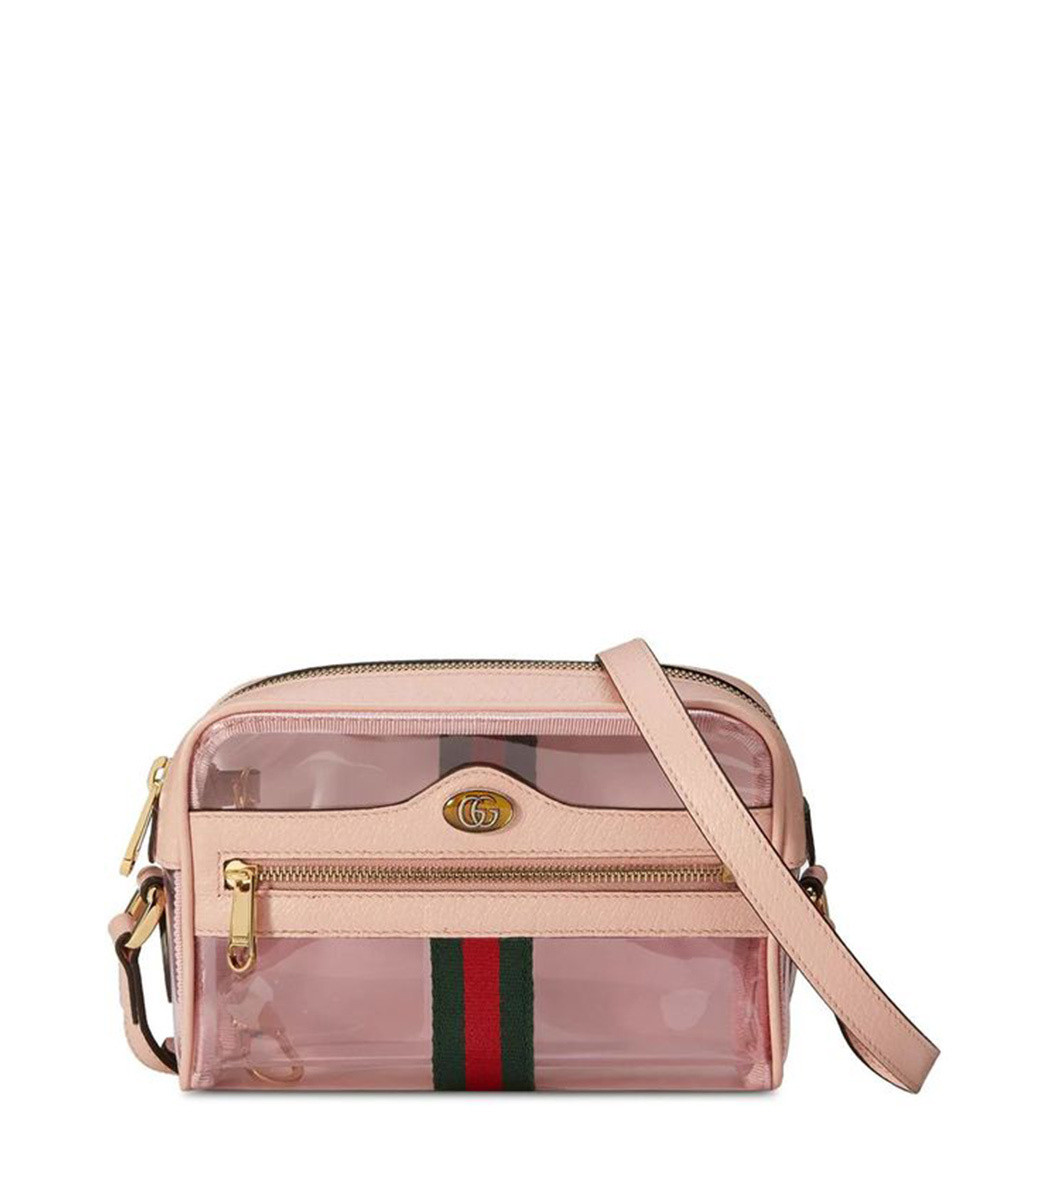 d08f17e3ada6 Home / Gucci / Ophidia Mini Transparent Bag. prev